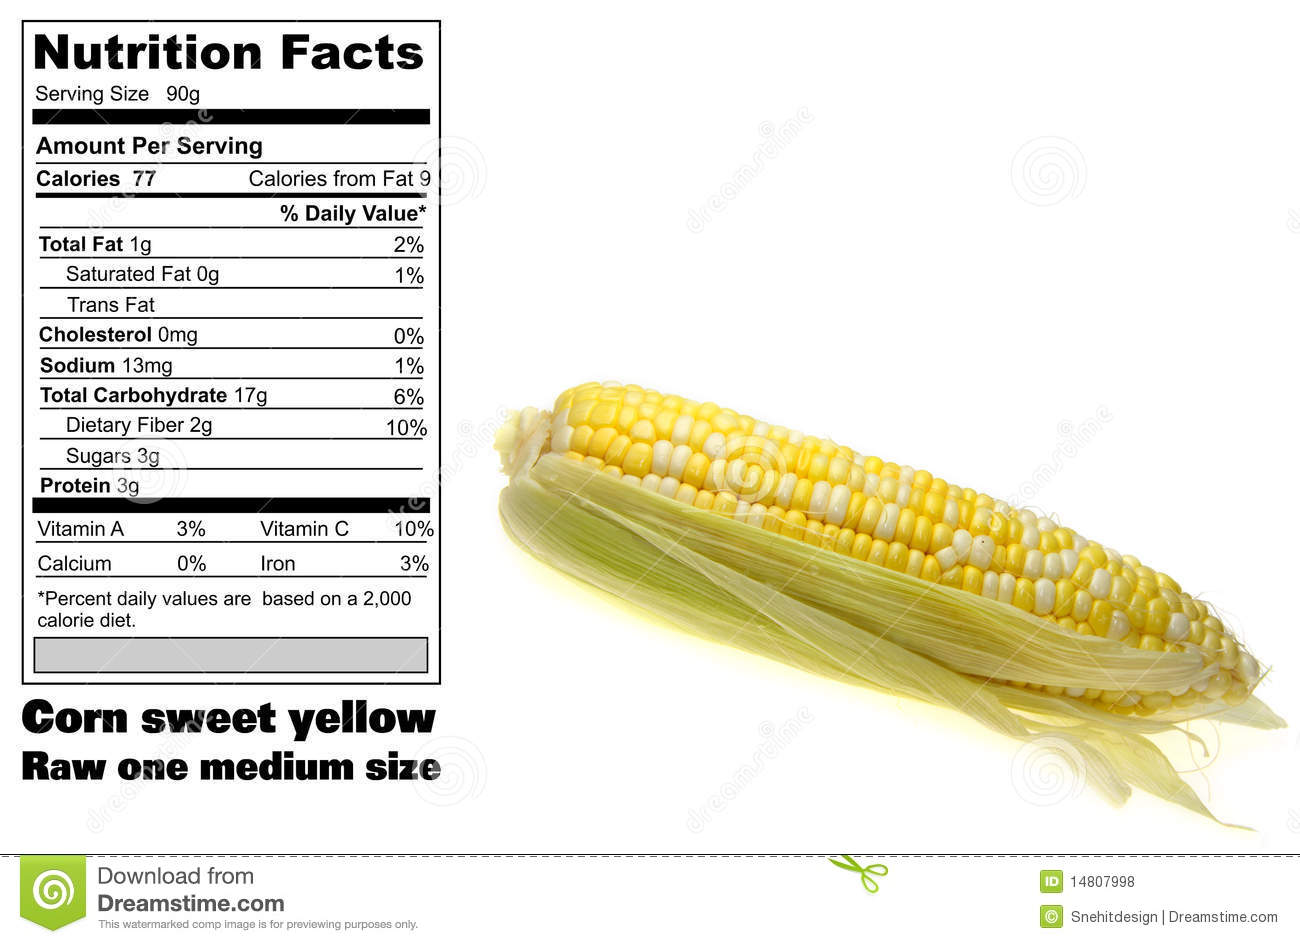 Nutrition Facts Corn Photos Free Royalty Free Stock Photos From Dreamstime